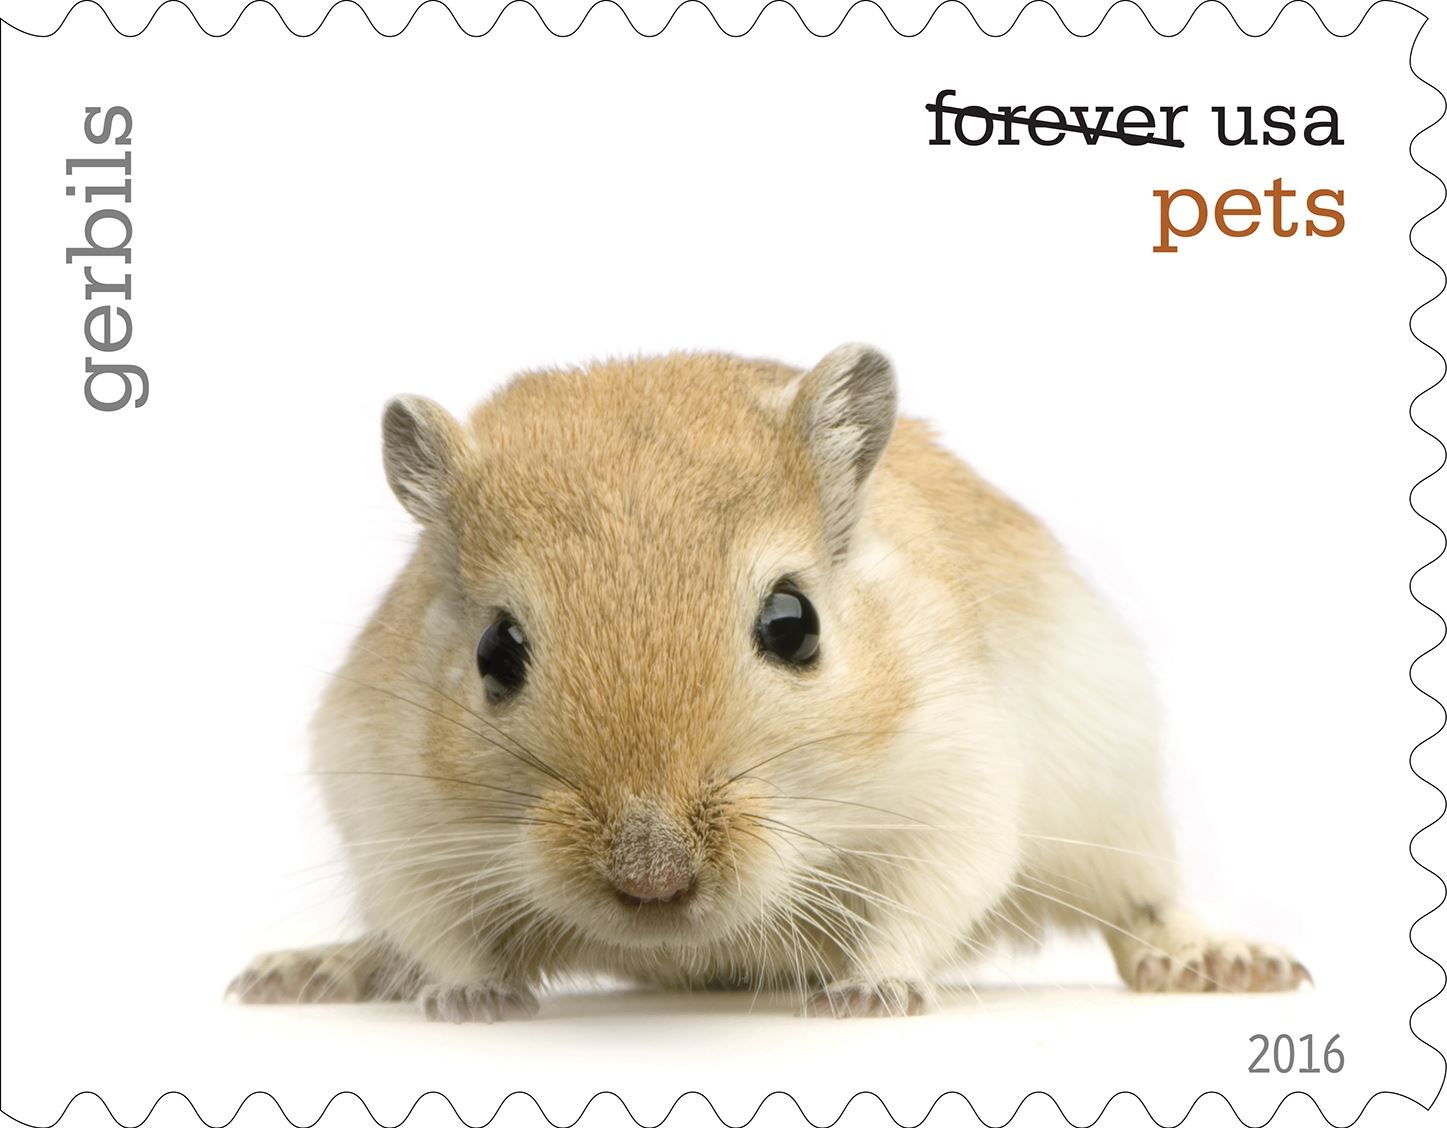 6-0_USPS16STA004g (2)-16 Gerbils will be among the pets celebrated in an upcoming set of Forever stamps issued by the U.S. Postal Service.